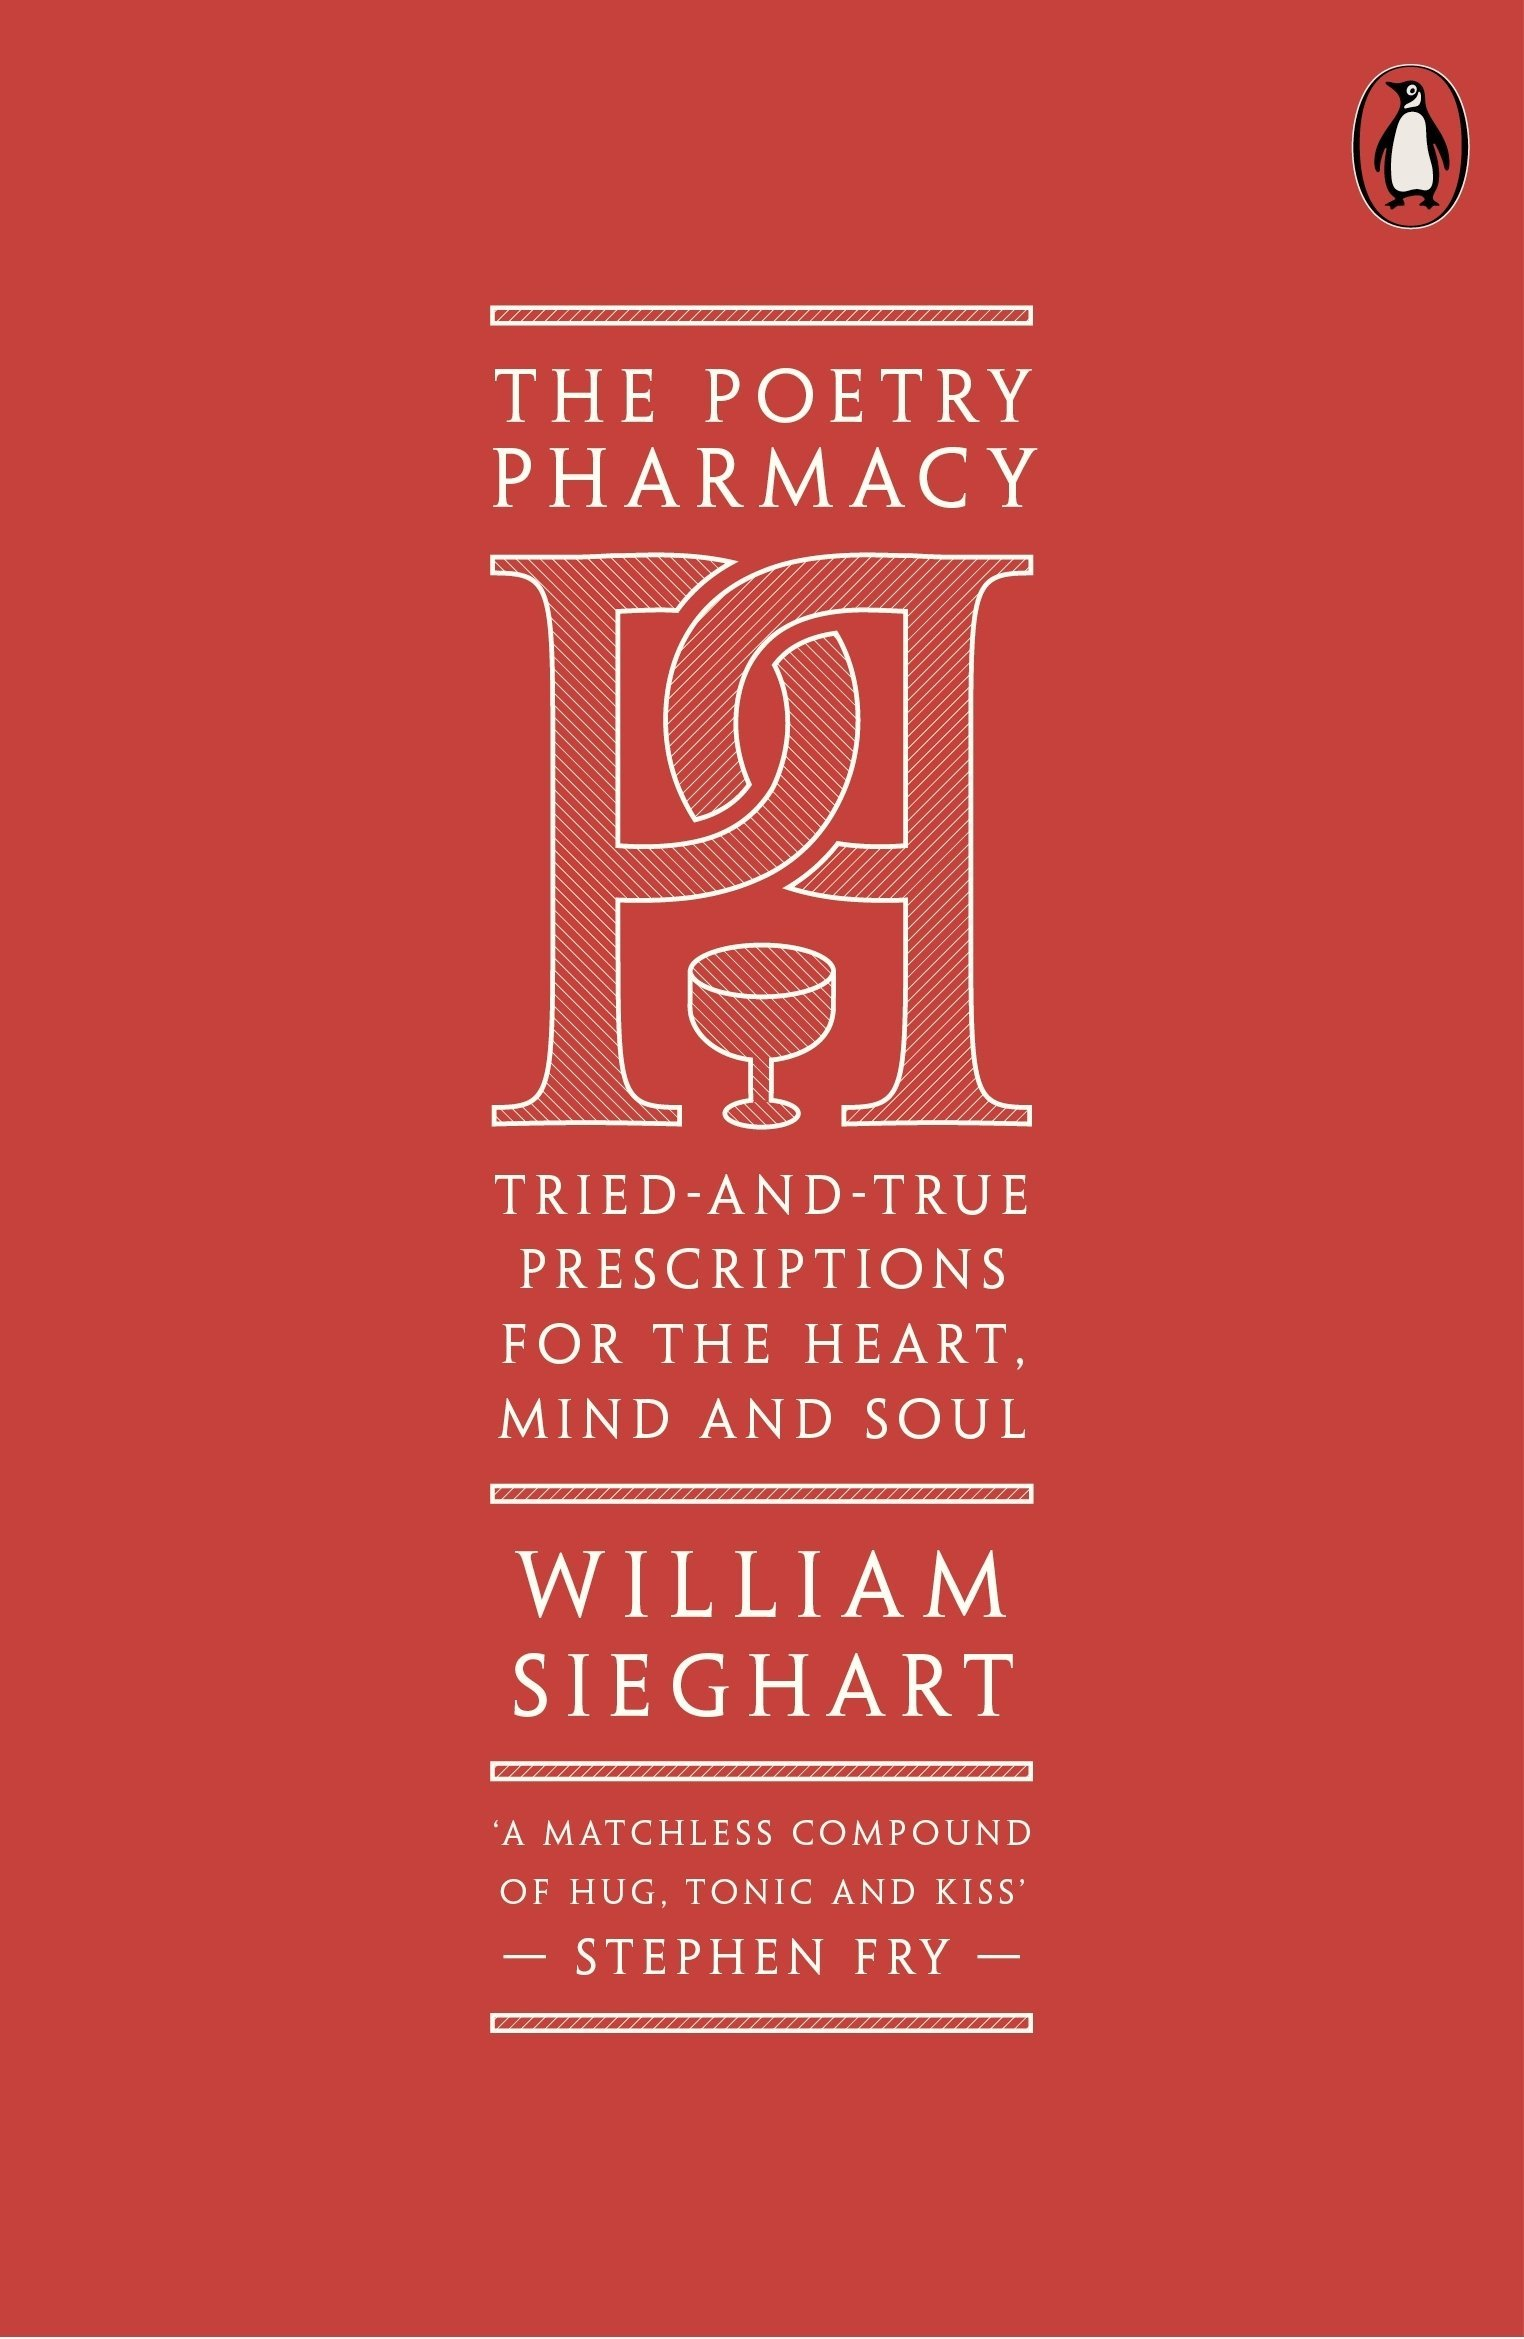 The Poetry Pharmacy: Tried-and-True Prescriptions for the Heart ...